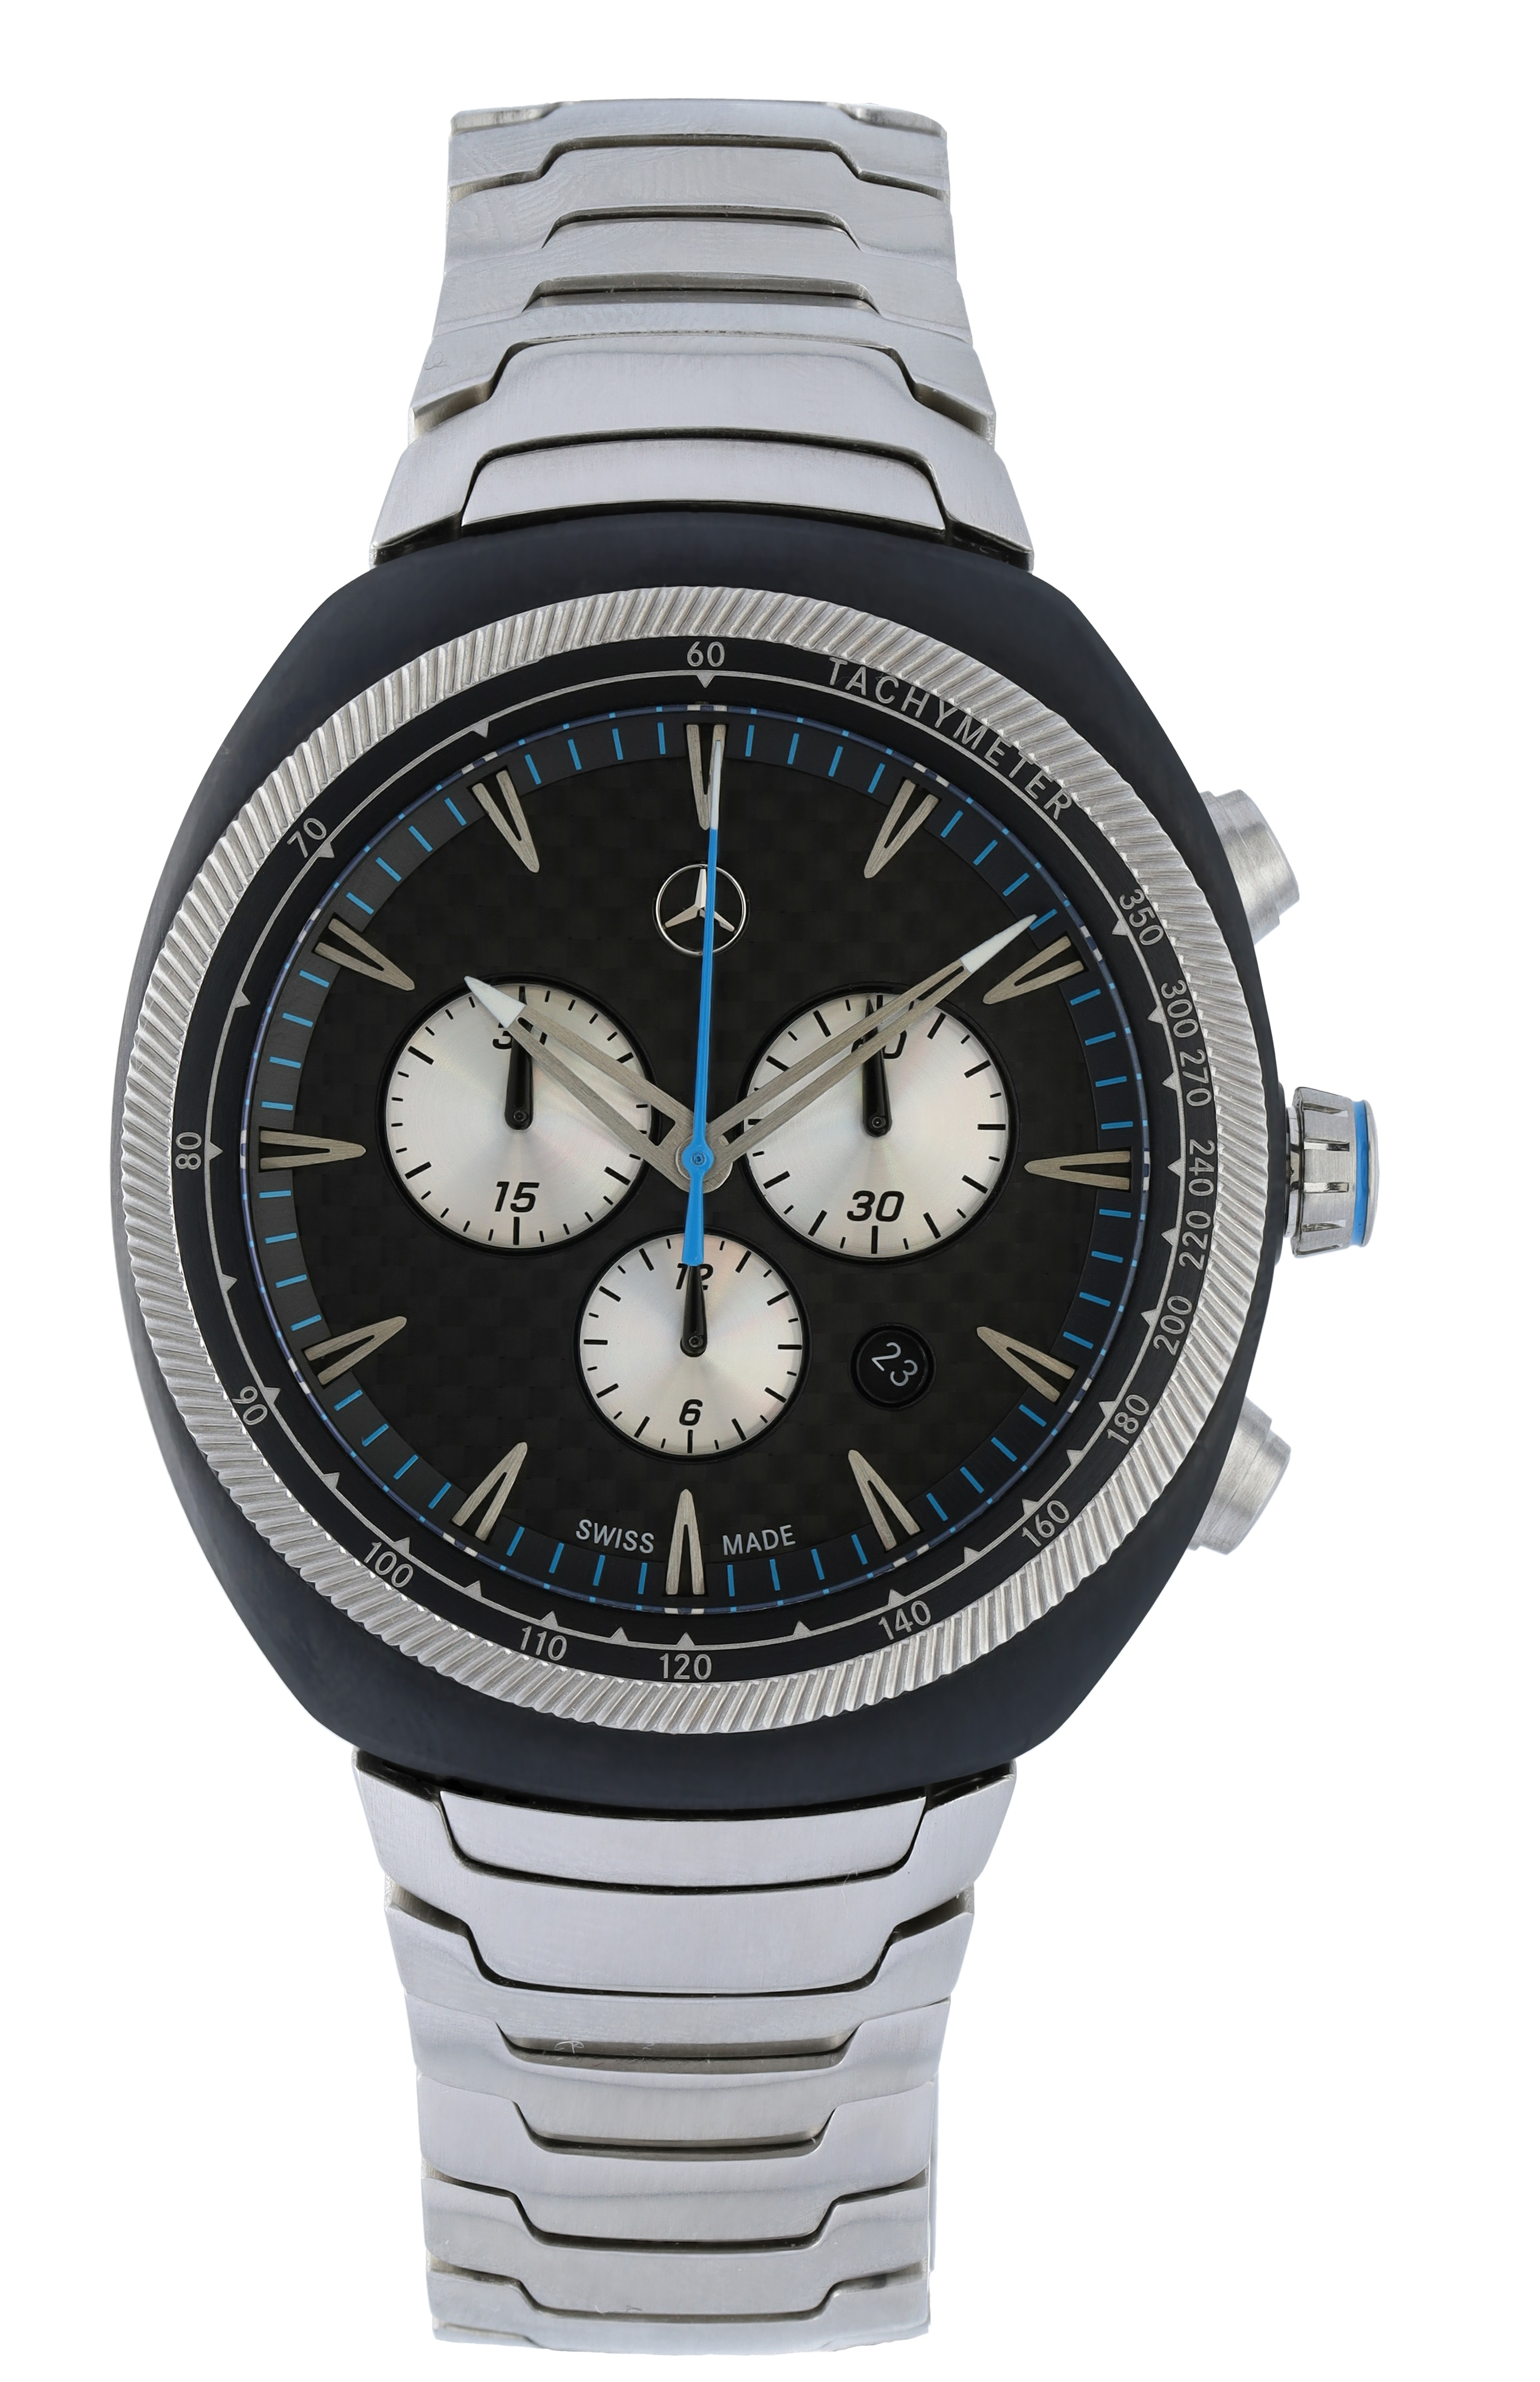 Montre-chrono homme, Motorsport